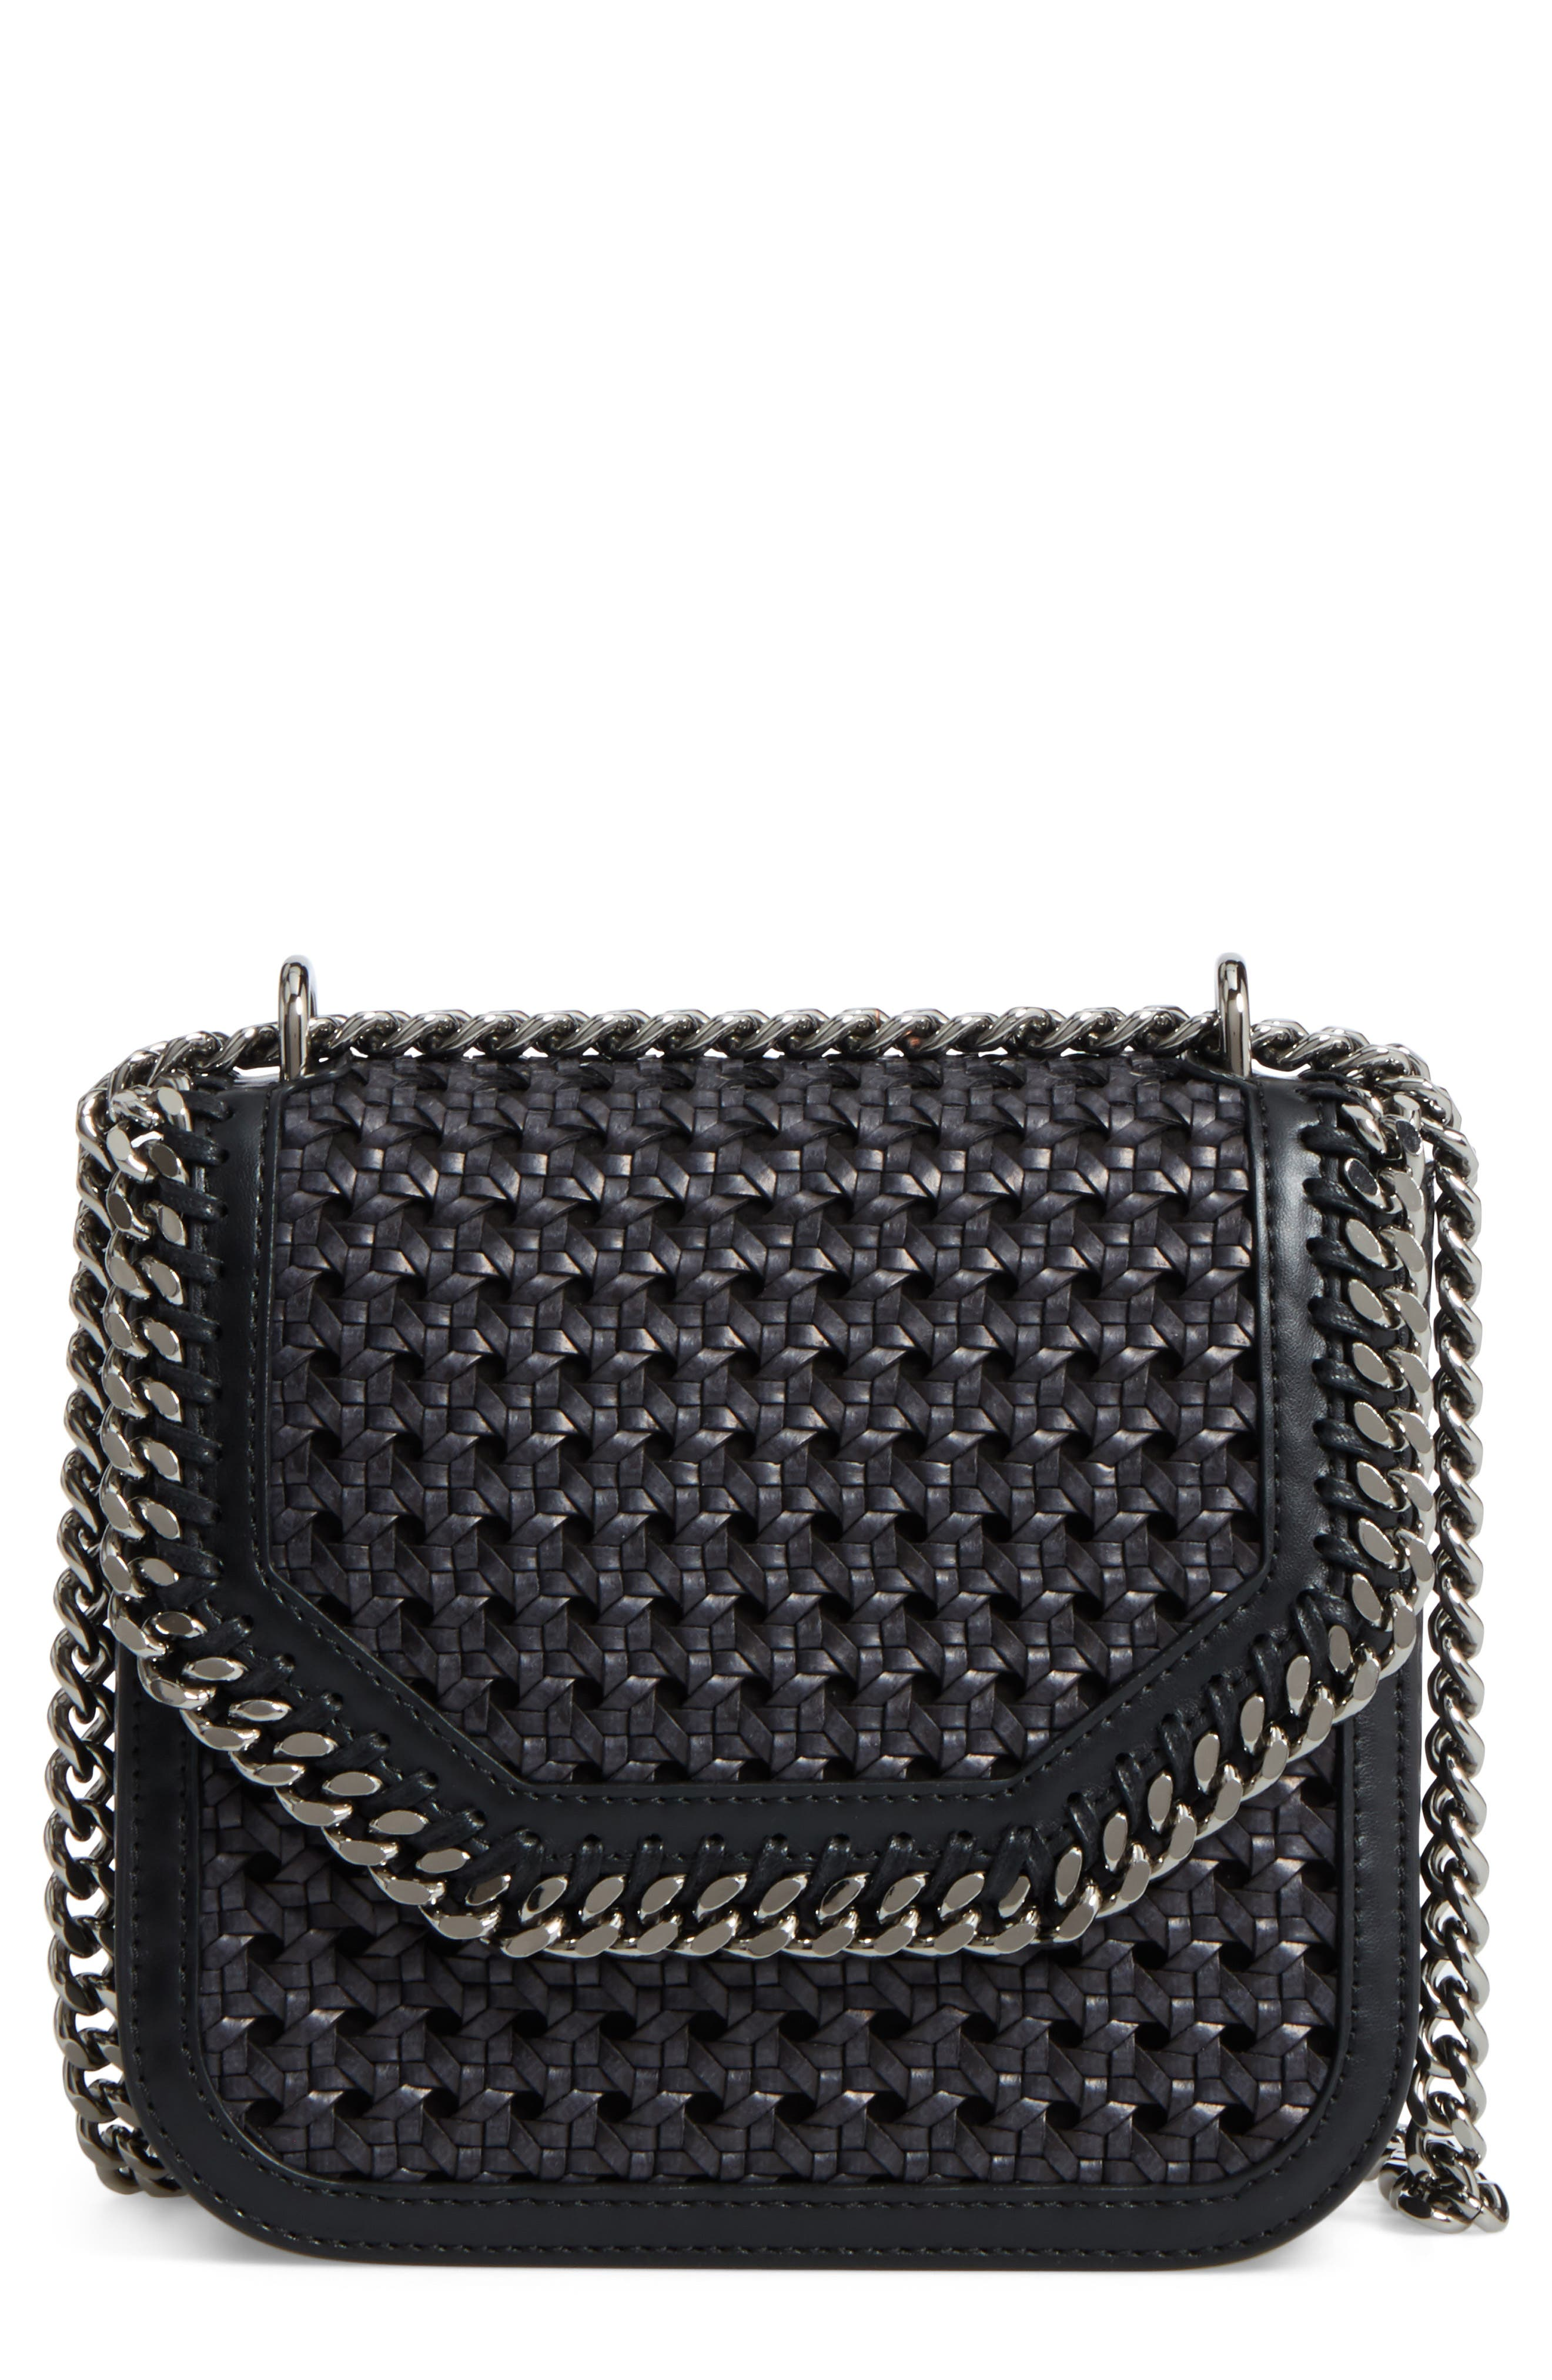 Alternate Image 1 Selected - Stella McCartney Falabella Box Woven Faux Leather Shoulder Bag